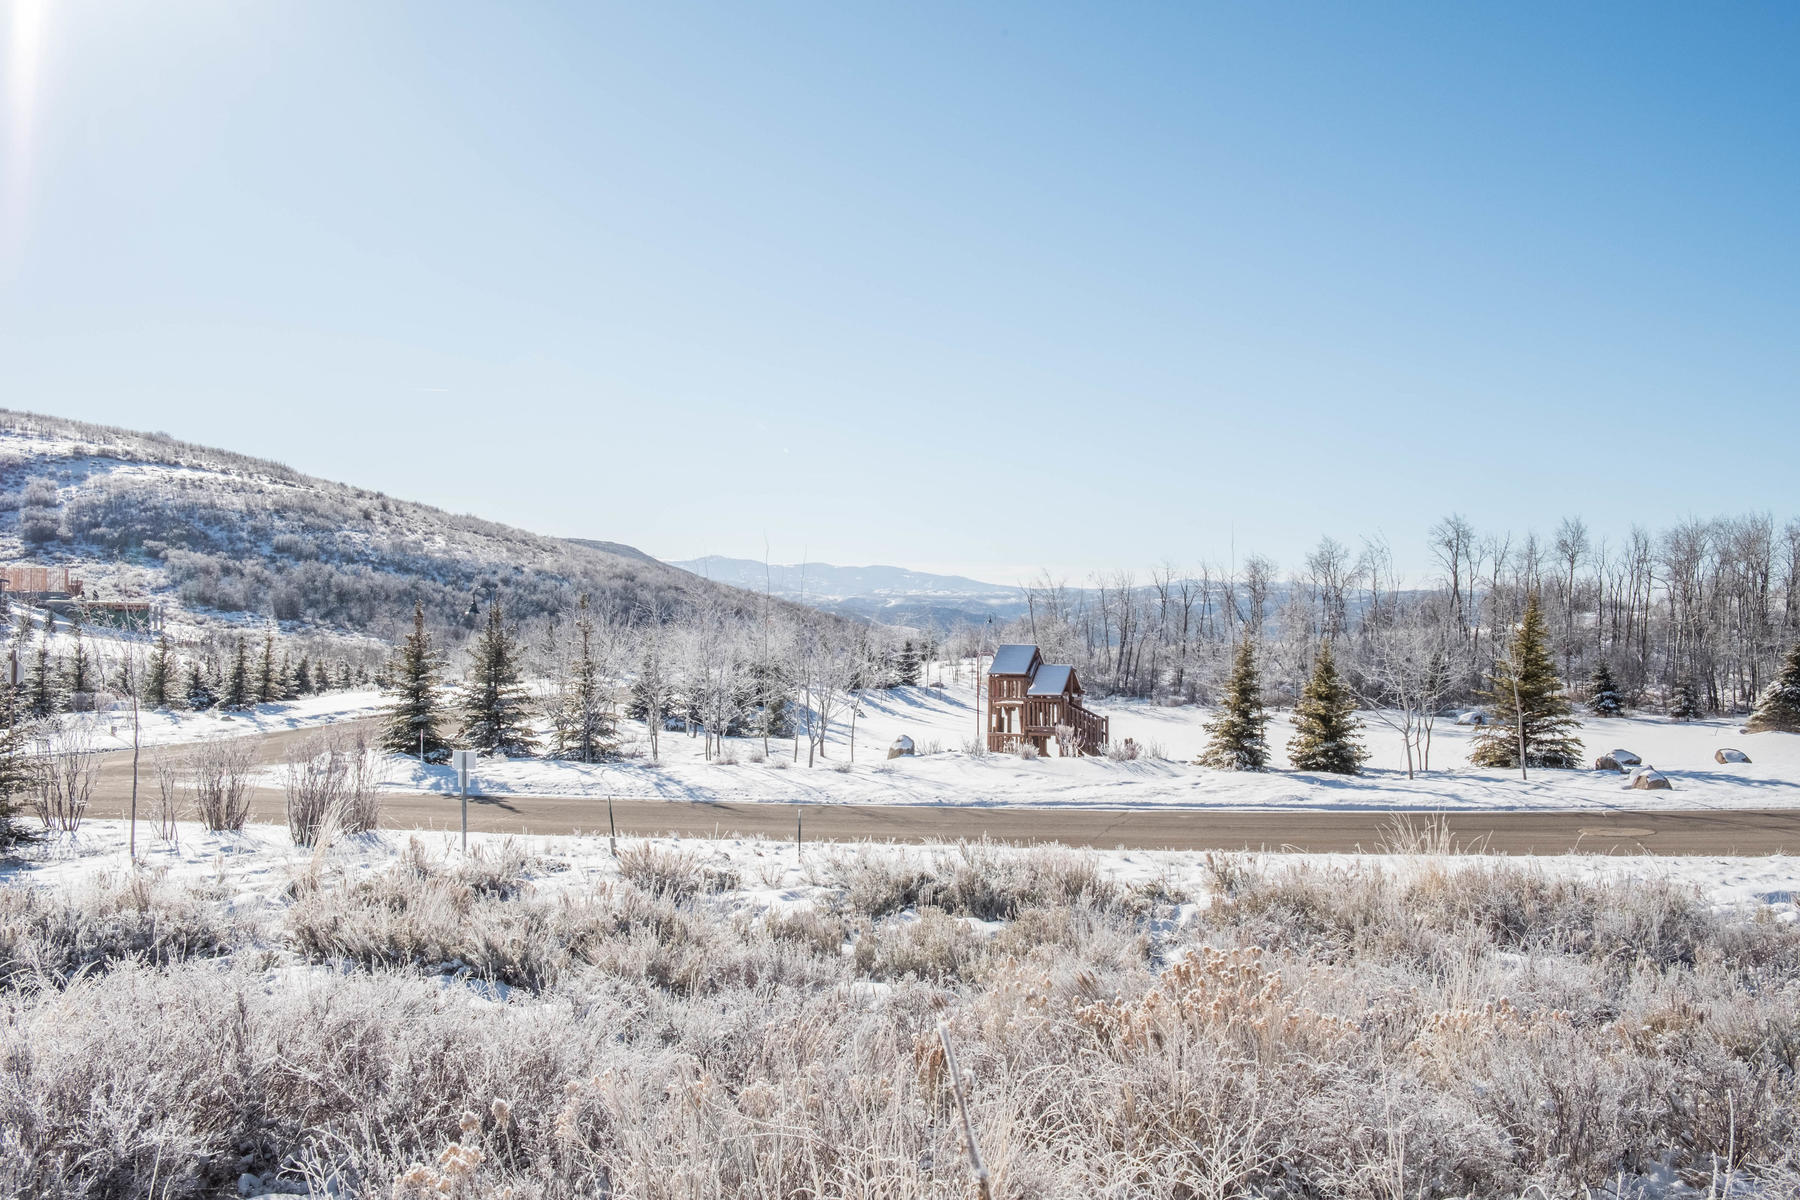 Land for Sale at Come Experience the Gated Community of Deer Vista 240 W Vista Ridge Rd Lot 95 Heber City, Utah 84032 United States